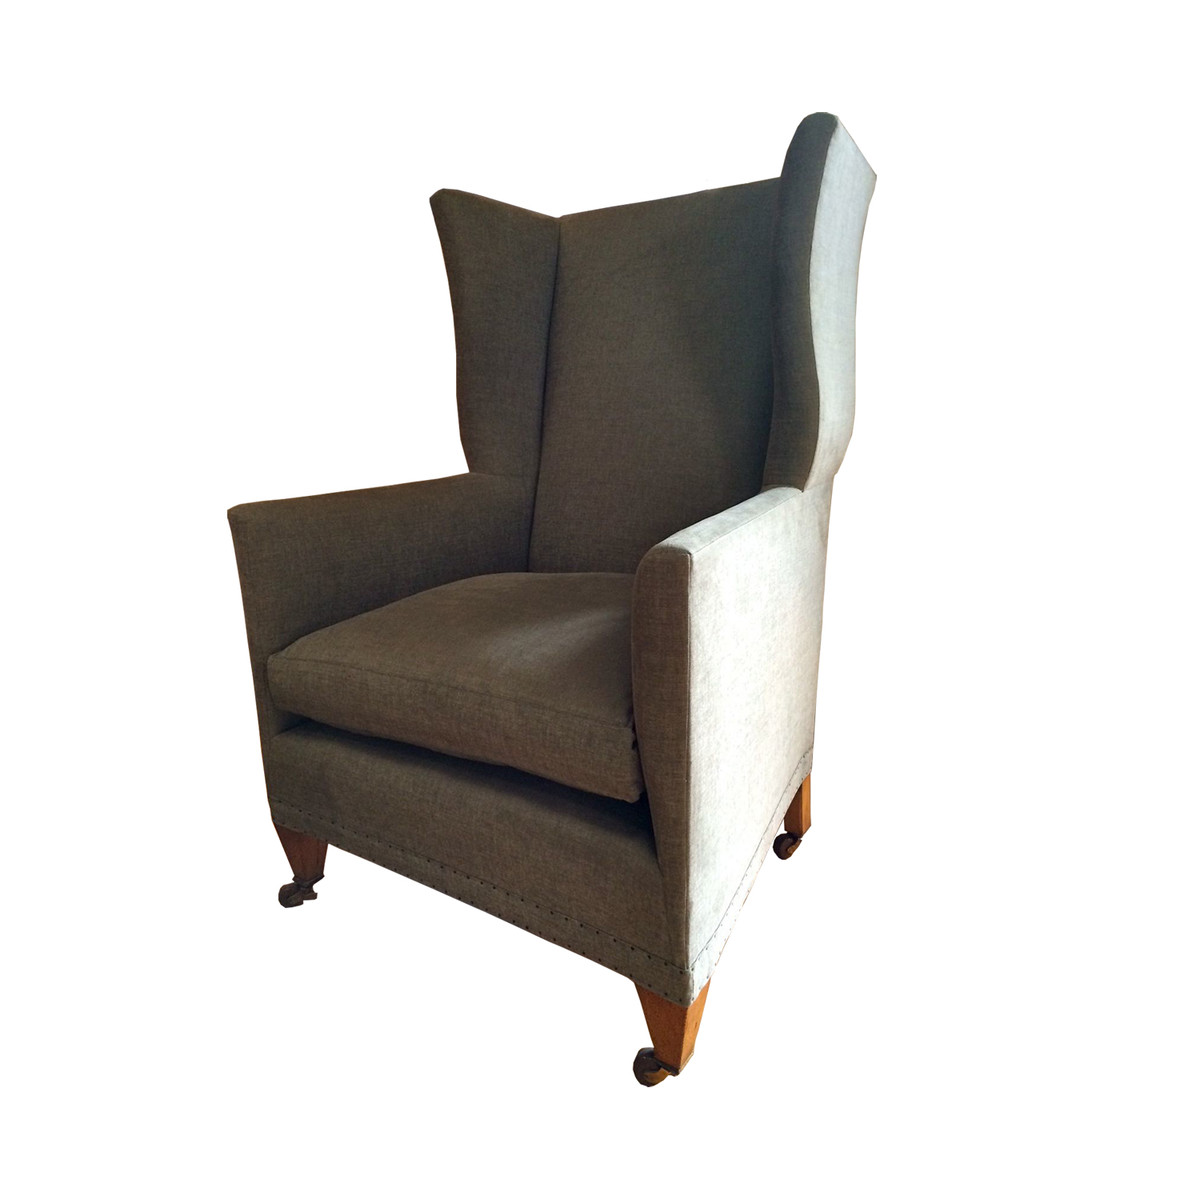 Home Chairs Contemporary Wing Chair. Previous